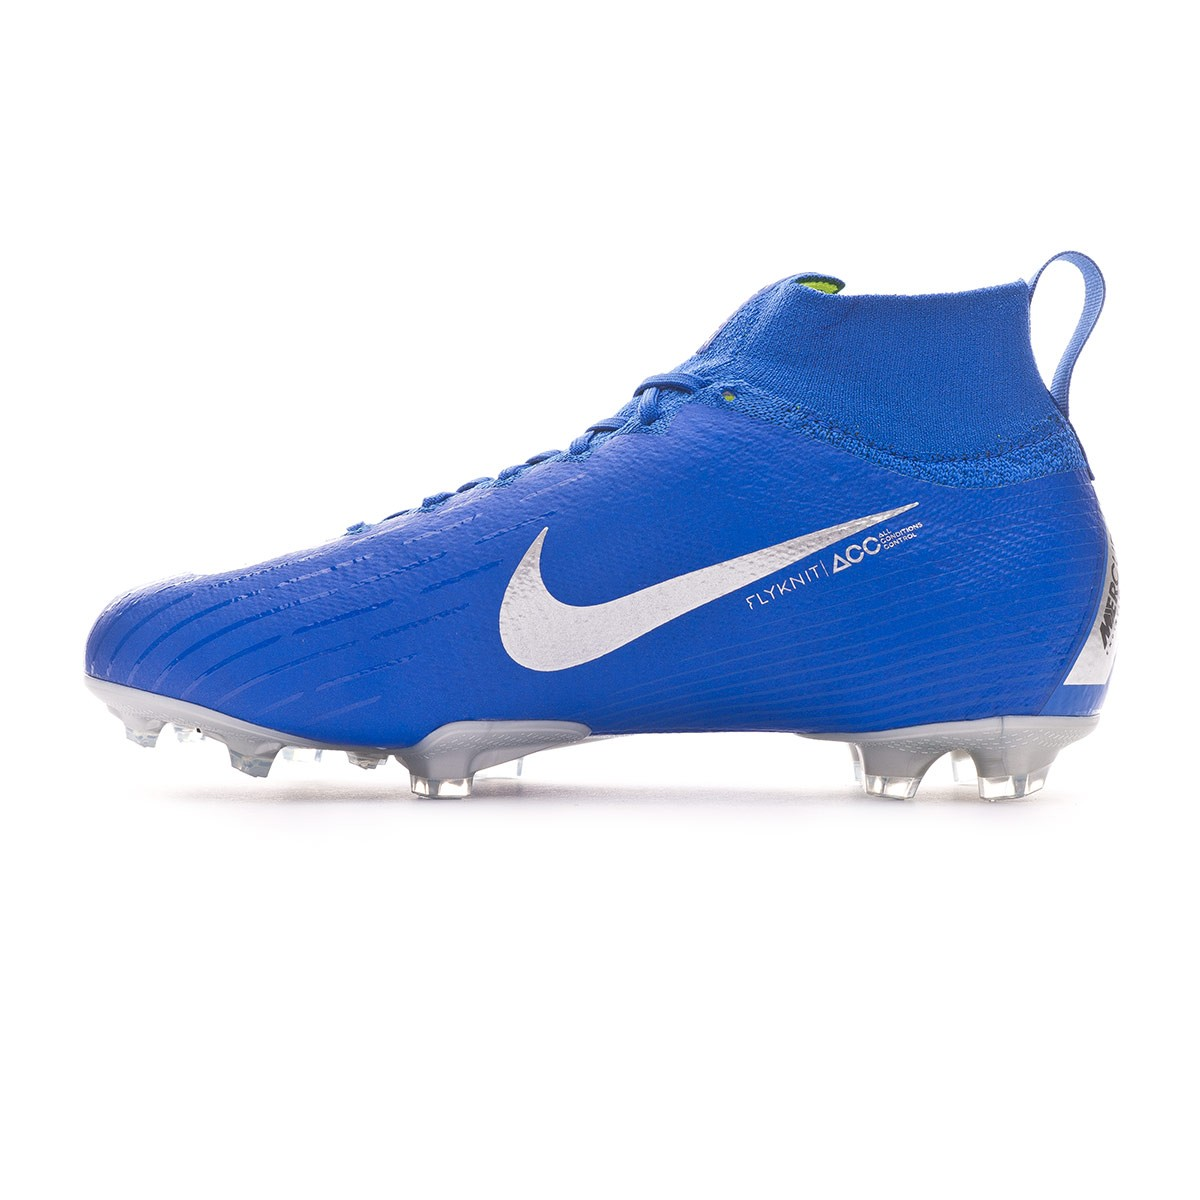 new style acec8 e2a4b Football Boots Nike Kids Mercurial Superfly VI Elite FG Racer blue-Metallic  silver-Black-Volt - Tienda de fútbol Fútbol Emotion